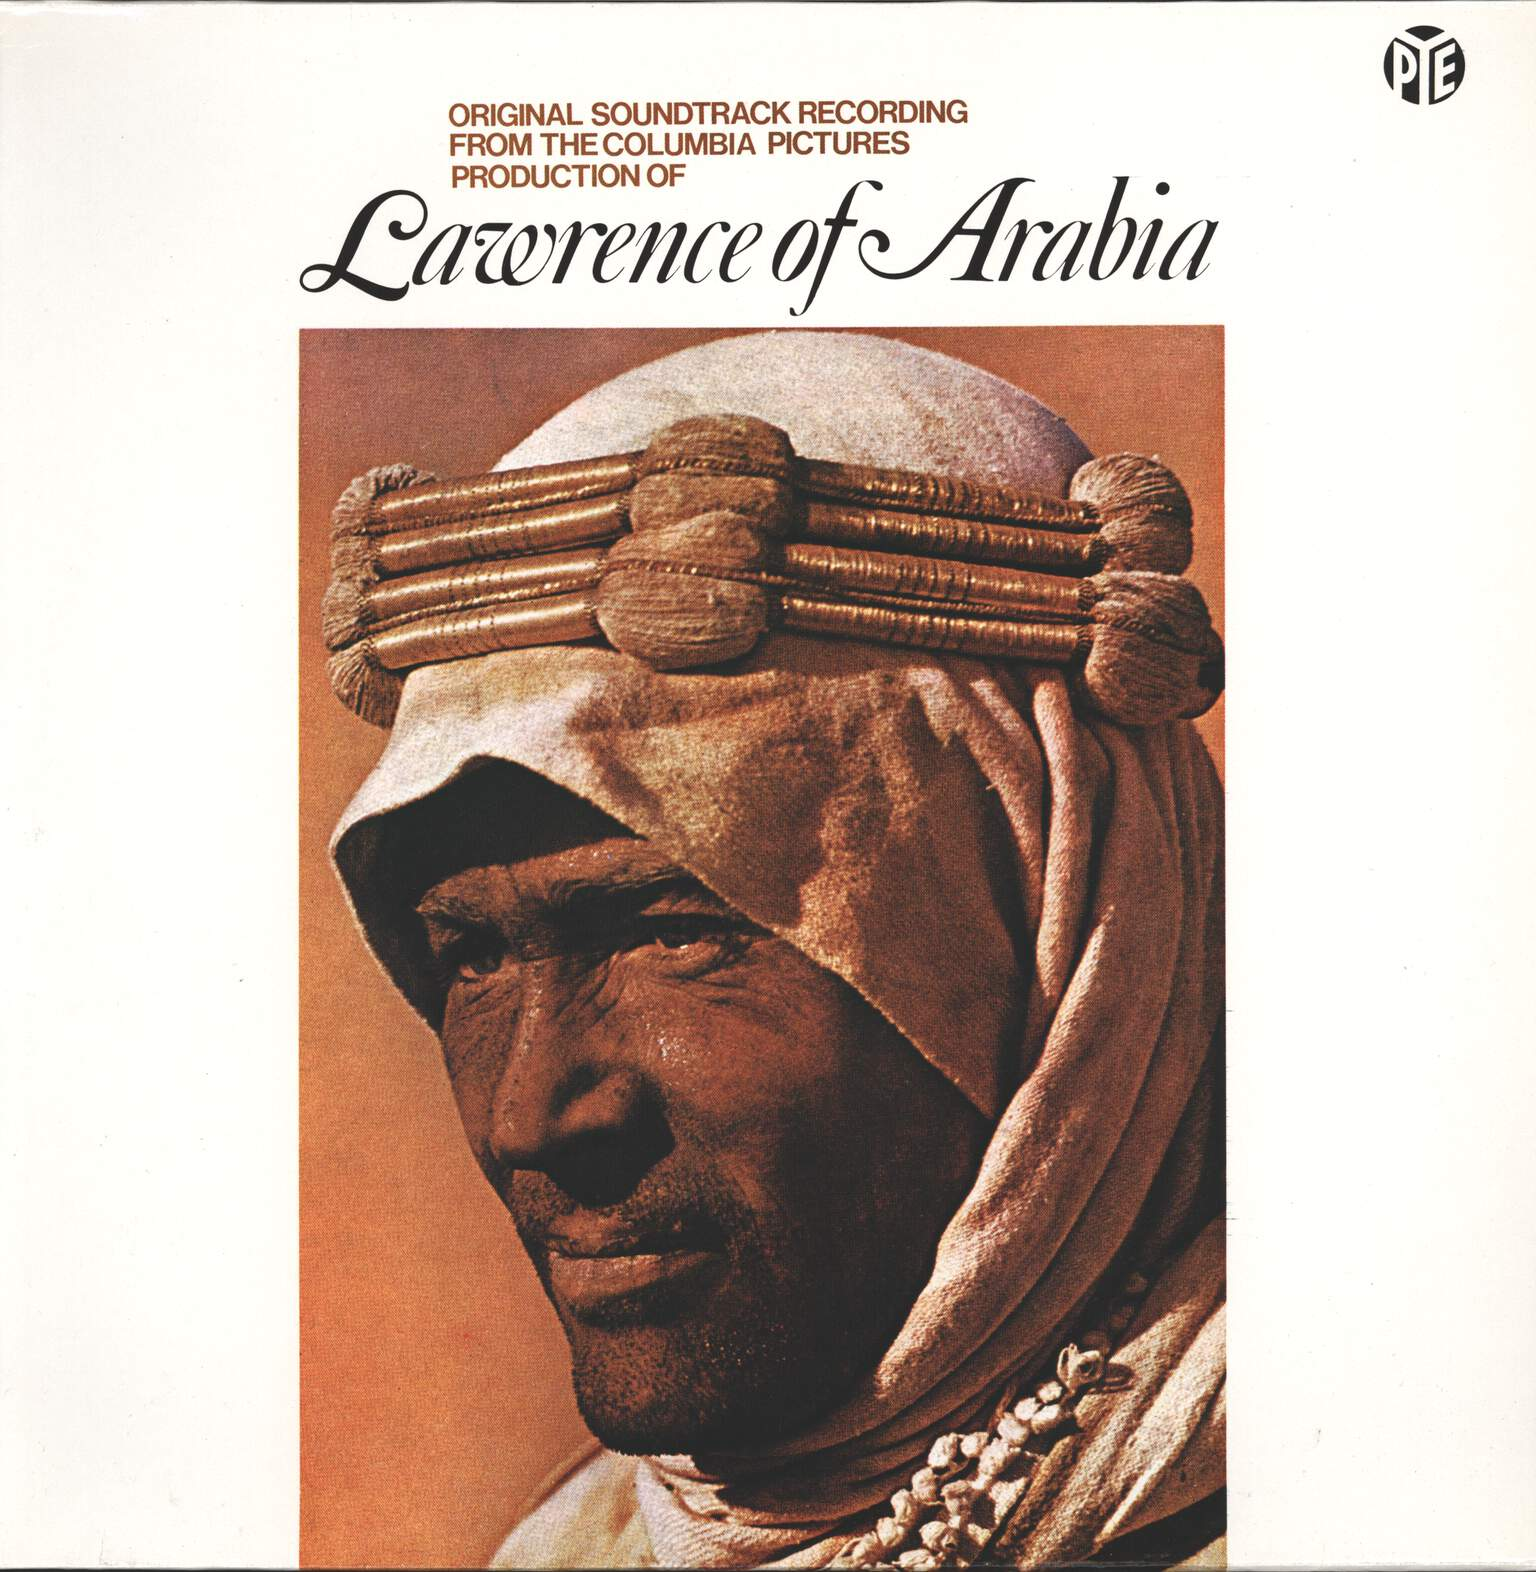 Maurice Jarre: Lawrence Of Arabia (Original Soundtrack Recording), LP (Vinyl)